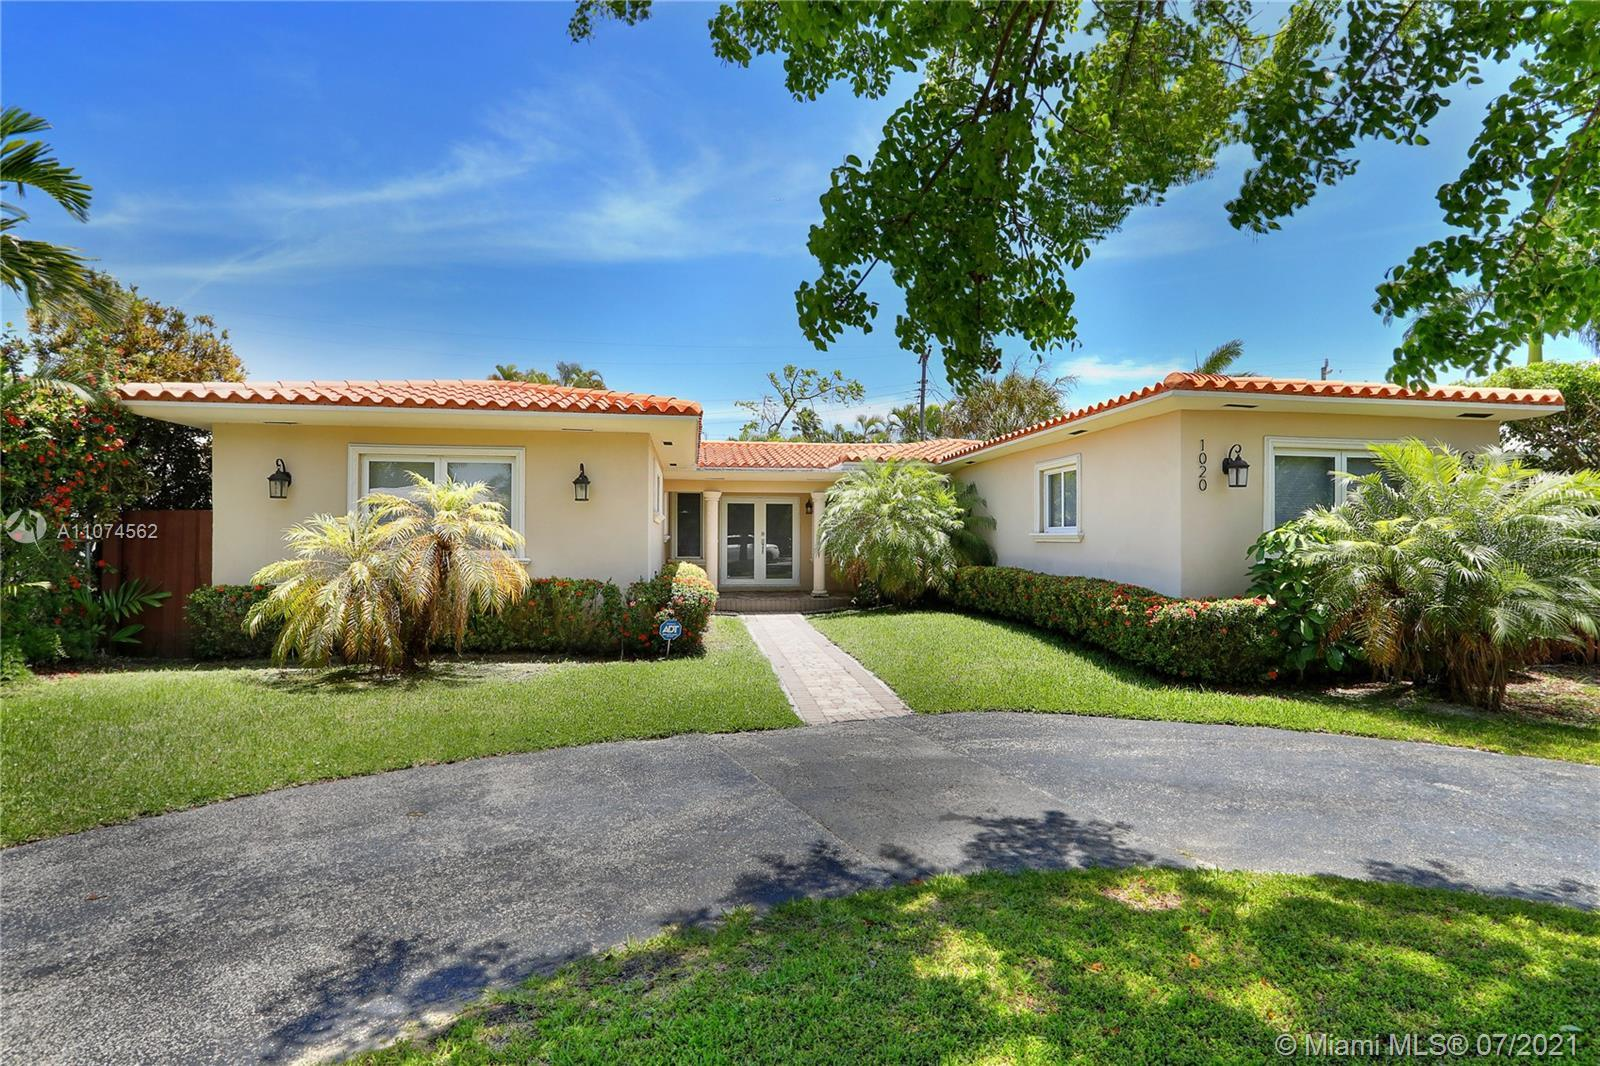 Located in gated Normandy Shores Island & near the Beach & Normandy Shore's Golf Club, this home has